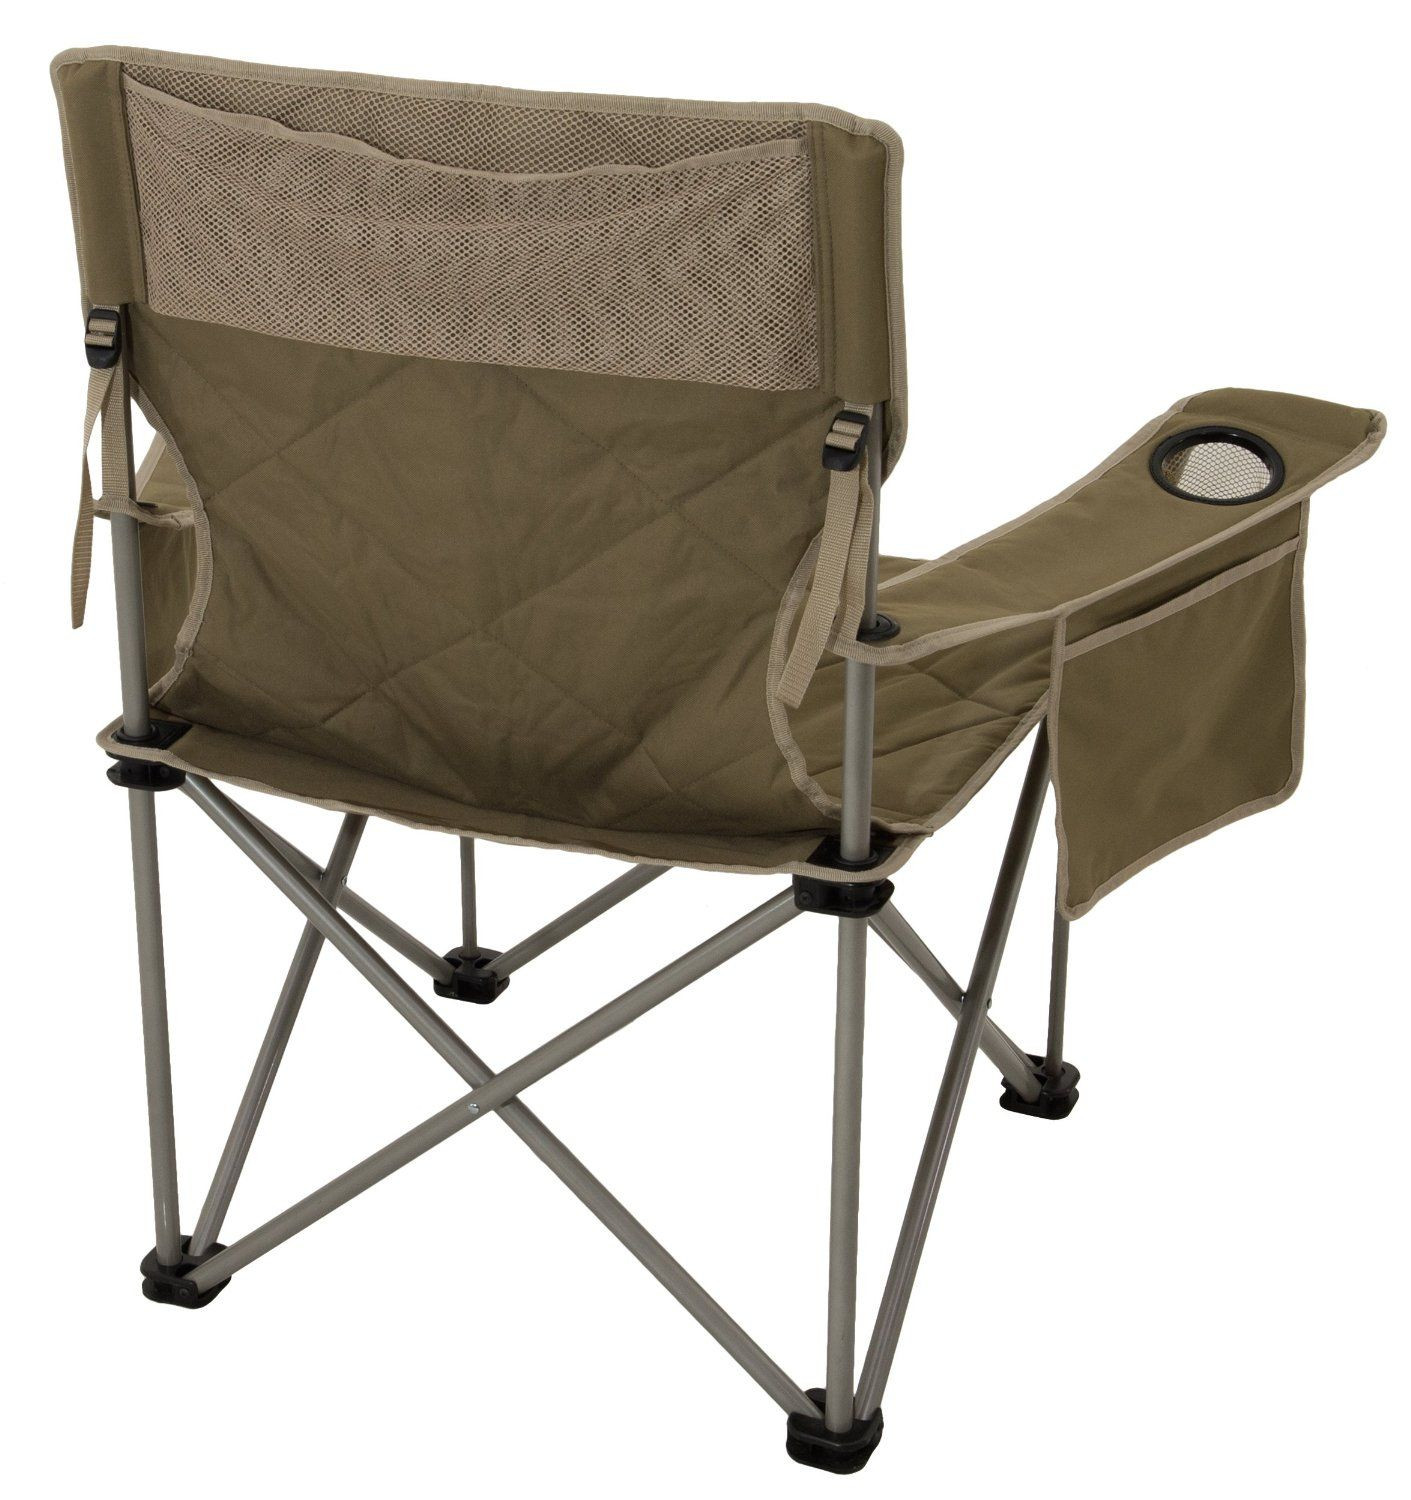 Peachy Camping Chairs For Heavy People For Big And Heavy People Machost Co Dining Chair Design Ideas Machostcouk